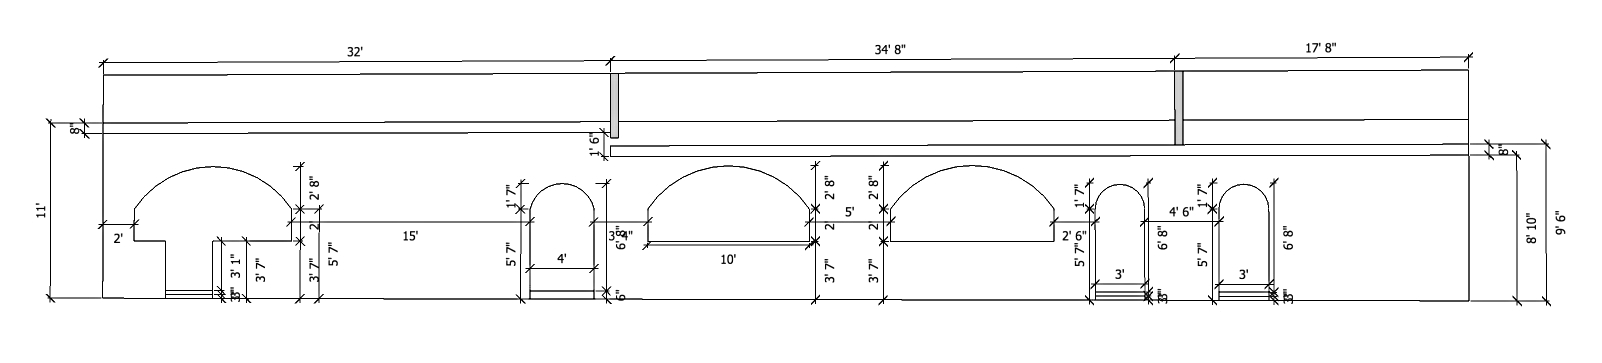 ARCHED WALL MARCH 16.jpg